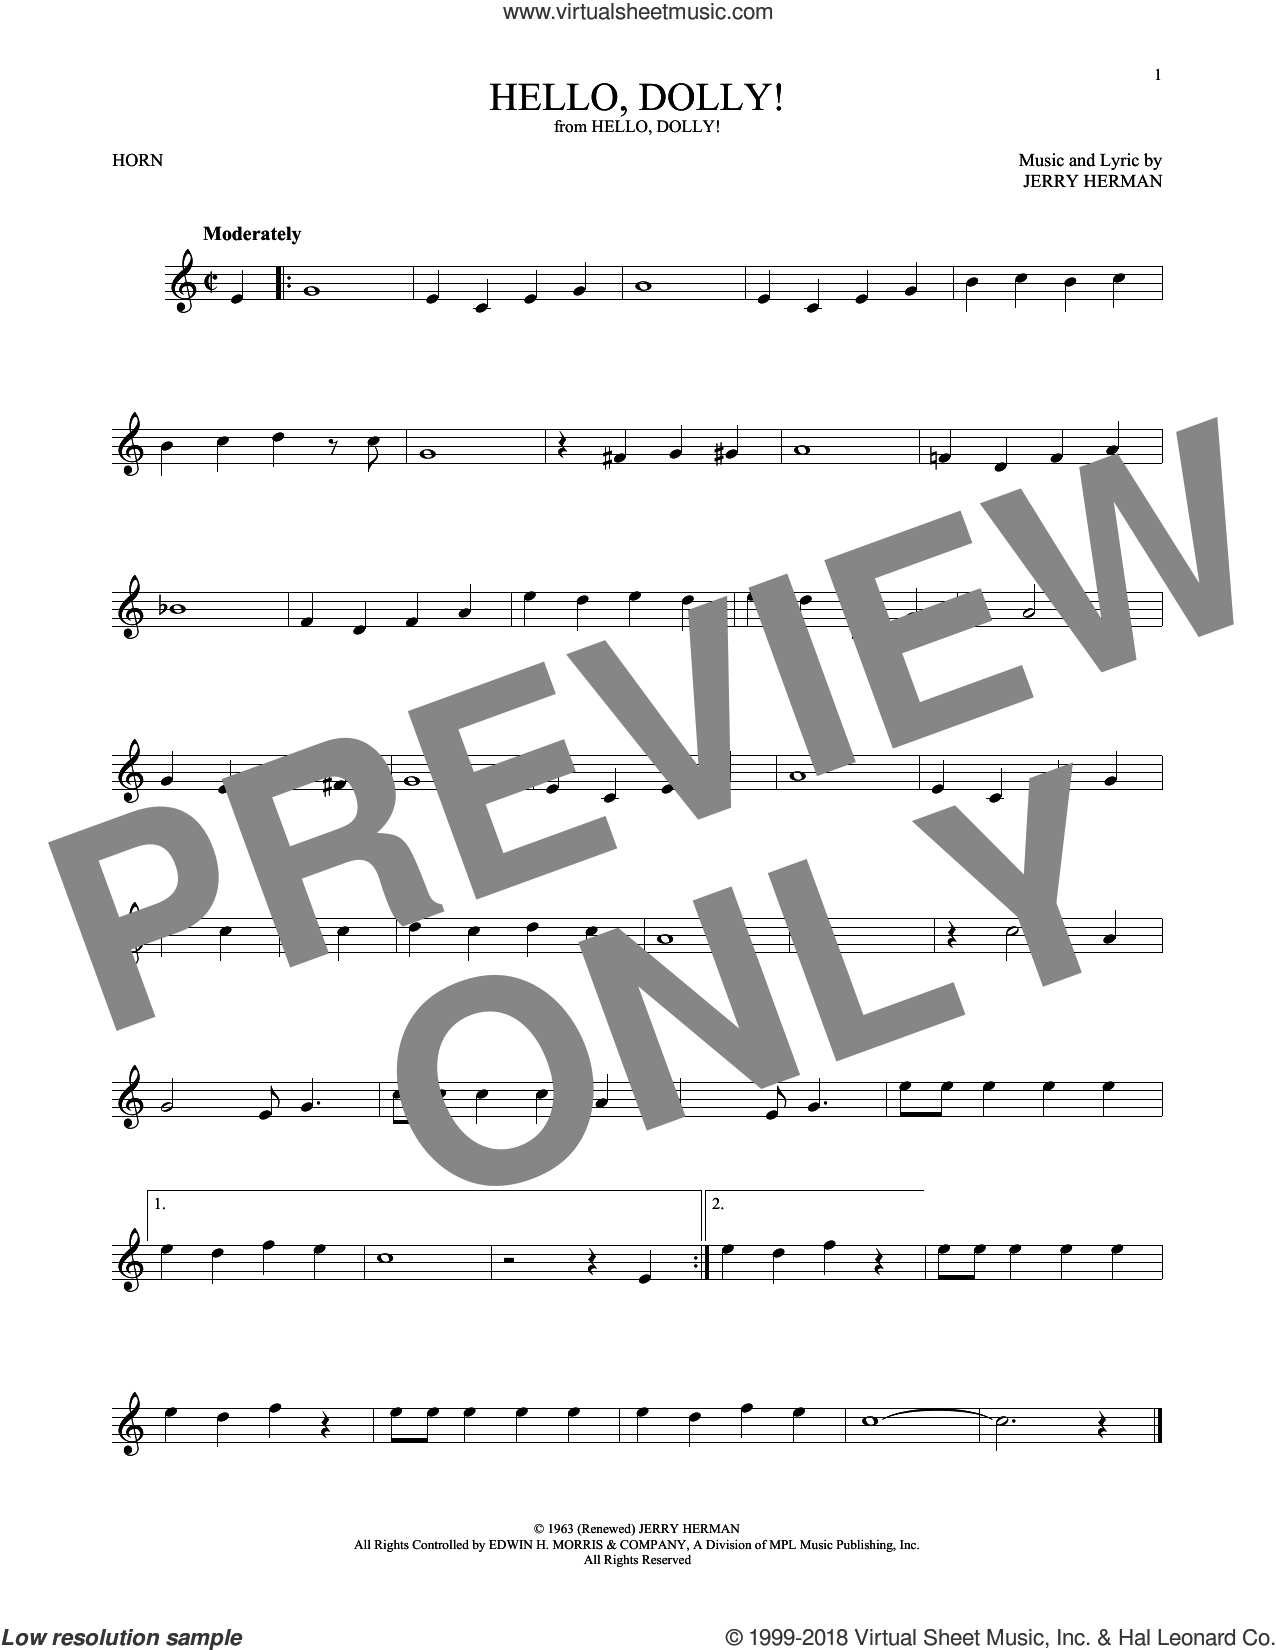 Hello, Dolly! sheet music for horn solo by Louis Armstrong and Jerry Herman, intermediate skill level